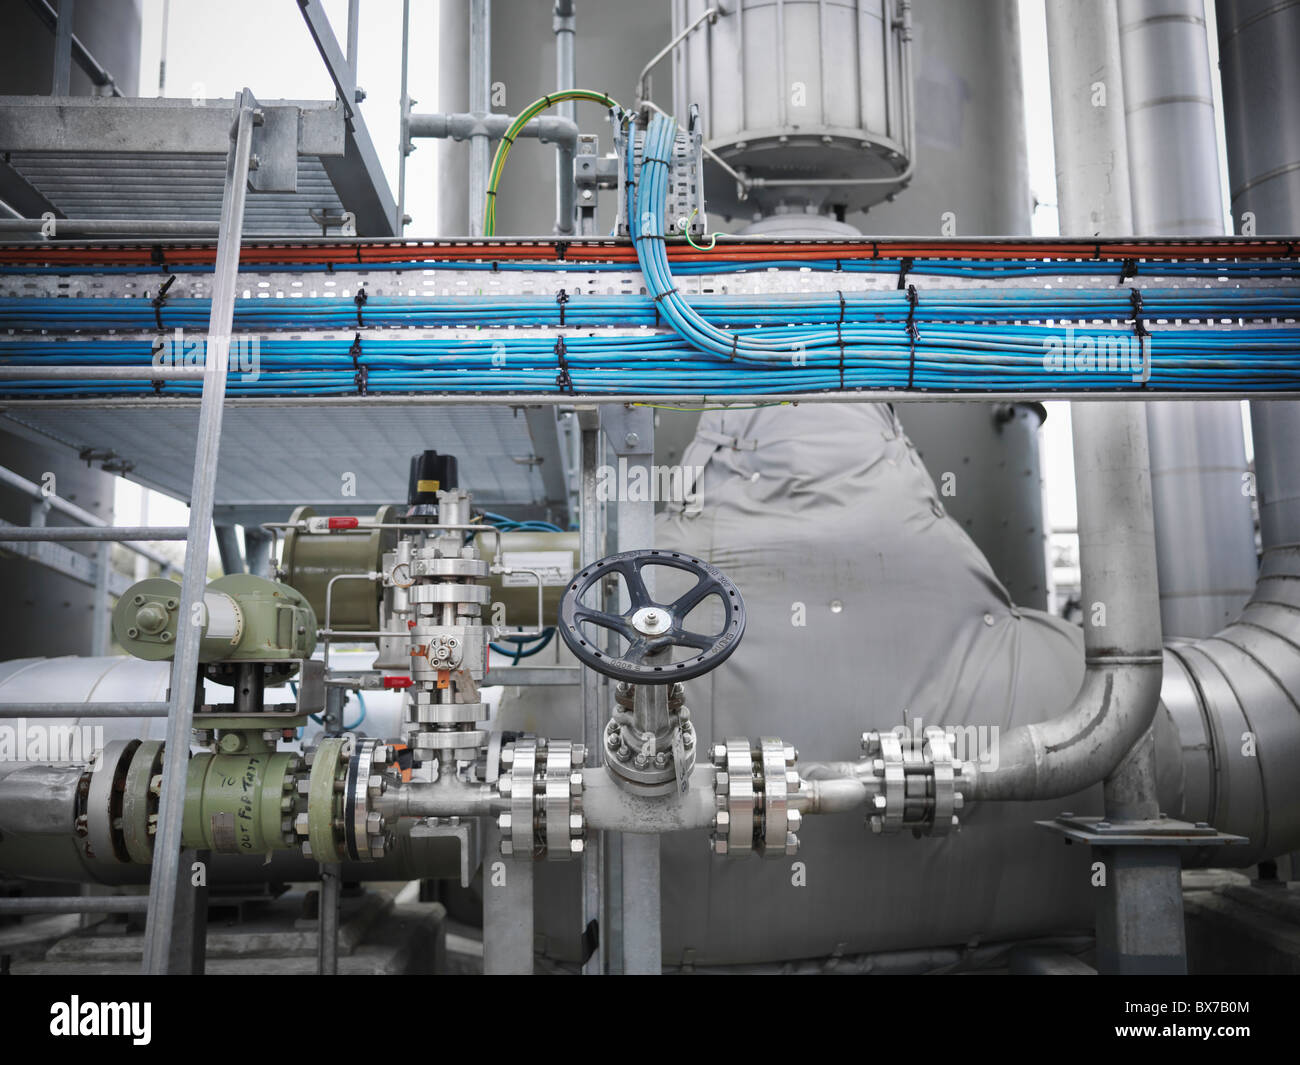 Valves and pipes at gas storage plant - Stock Image